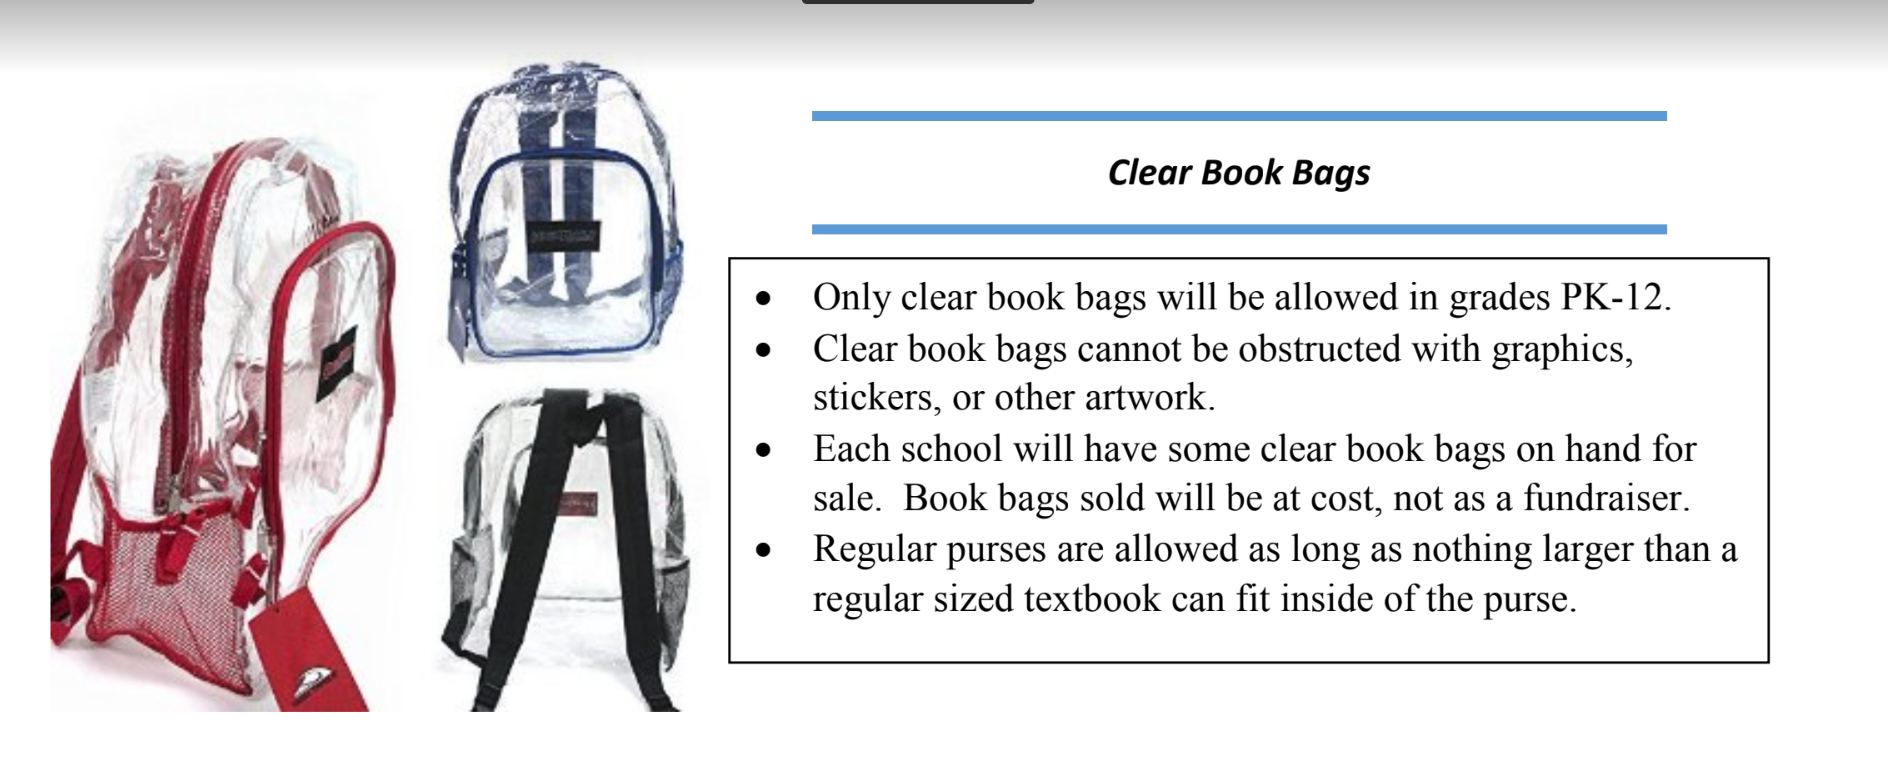 Clear Book Bags 2018-2019